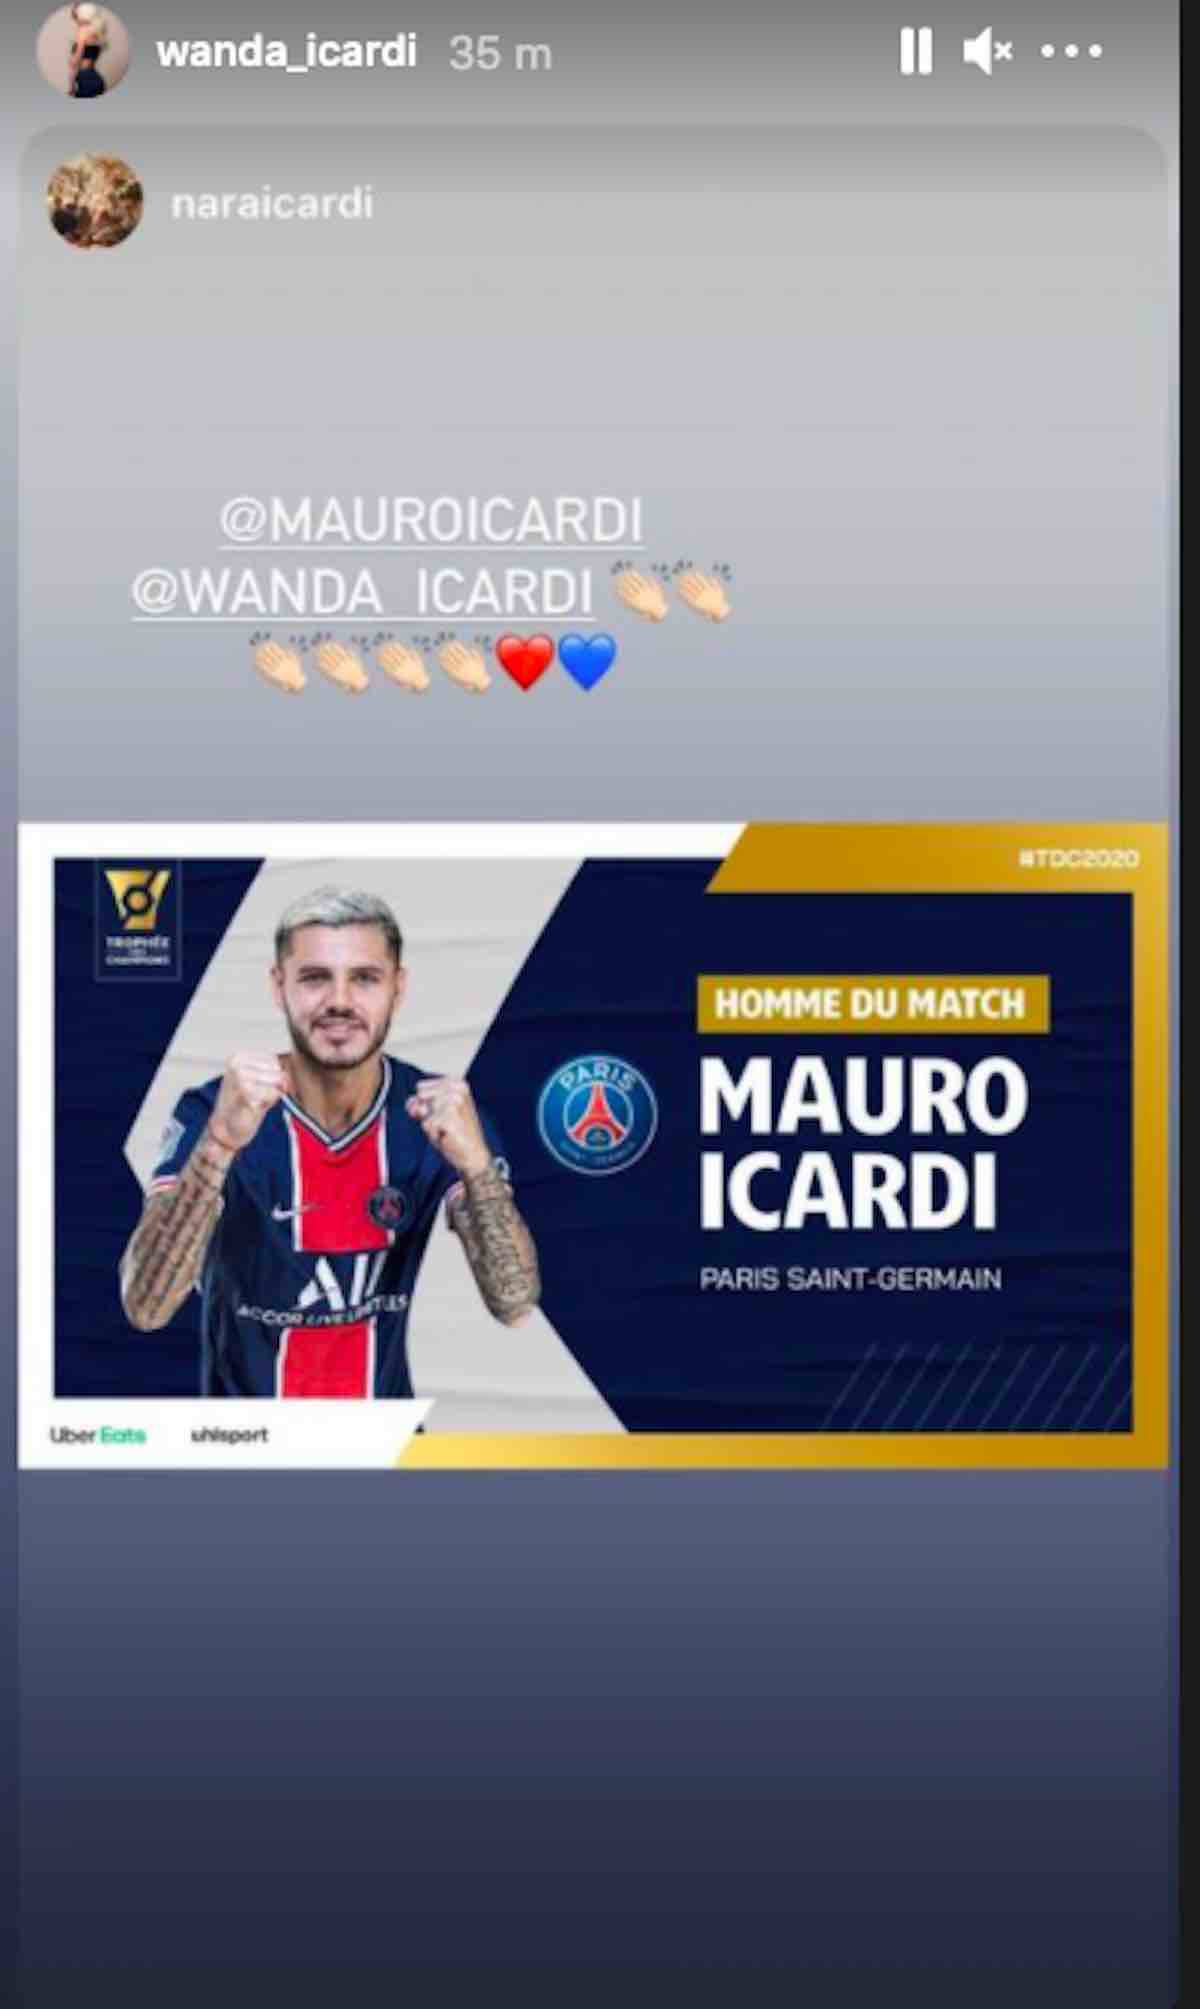 post wanda icardi man of the match